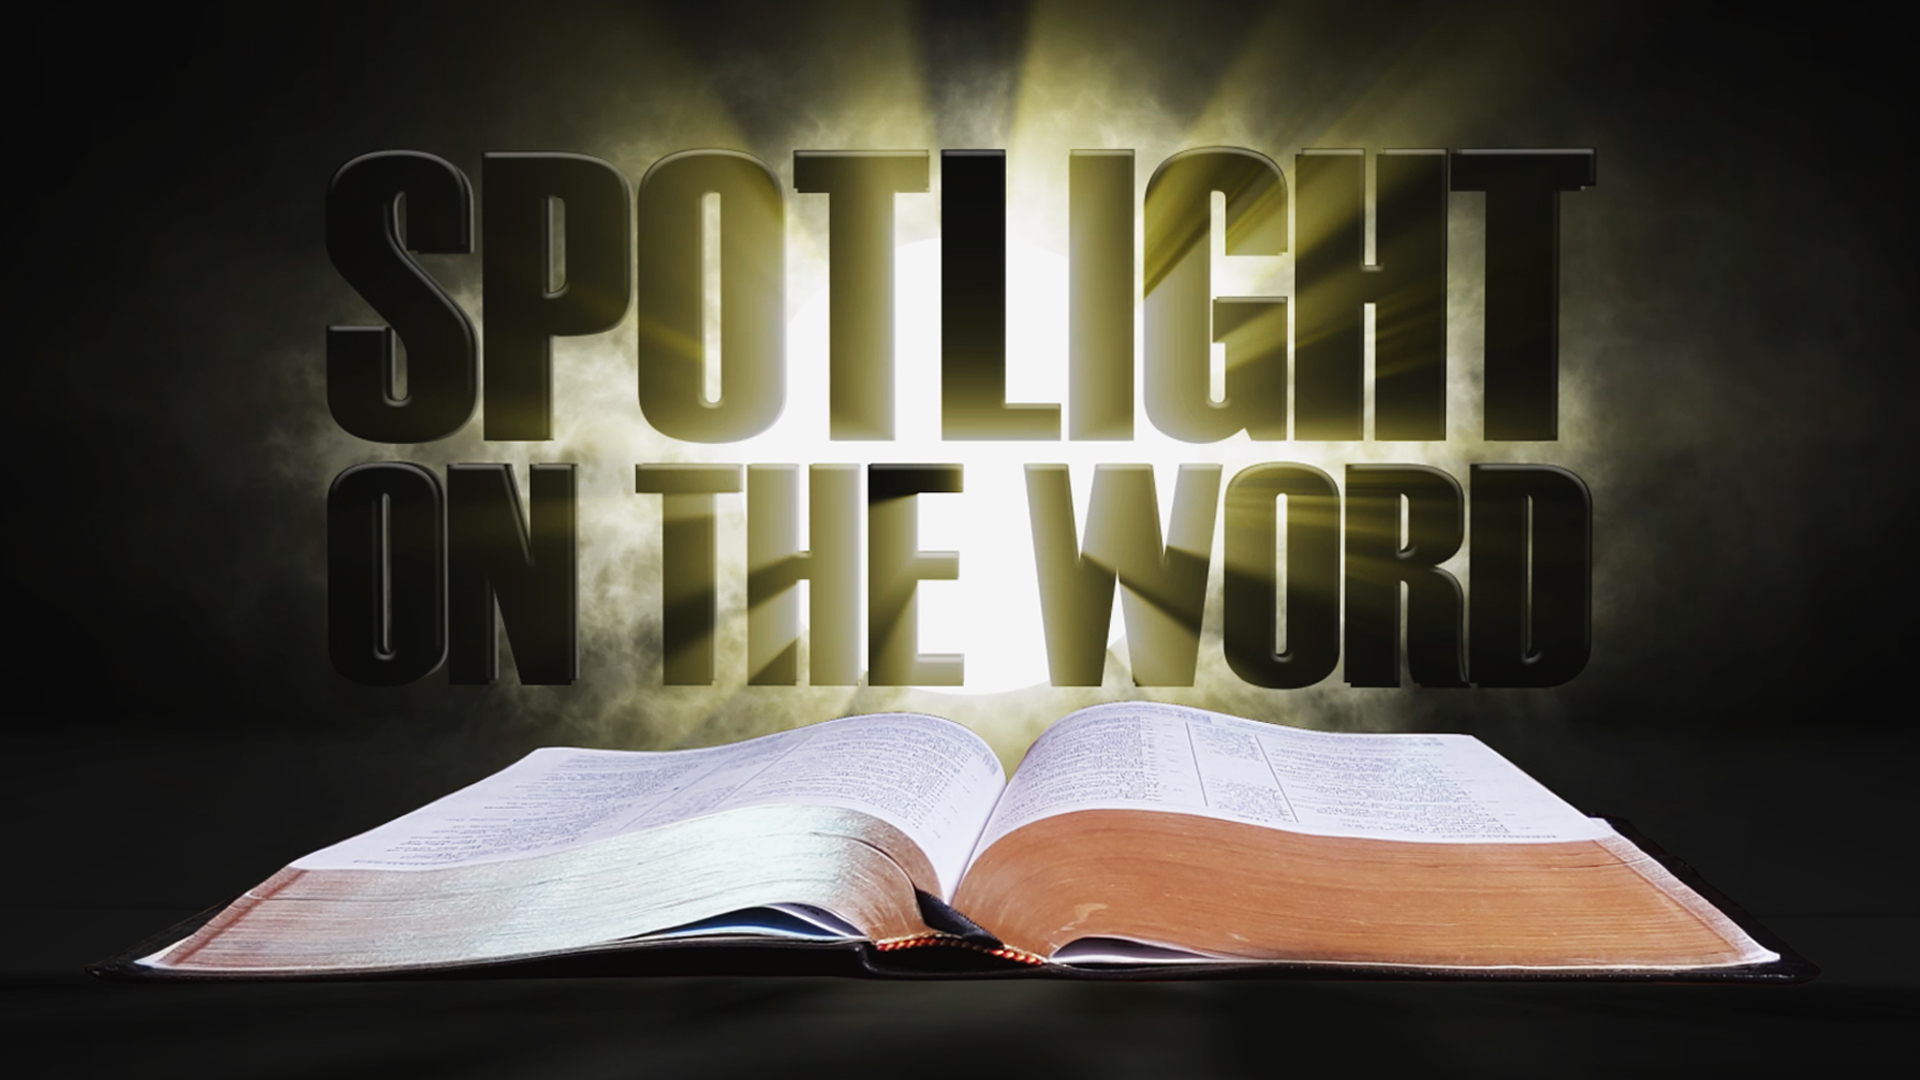 Spotlight on the Word